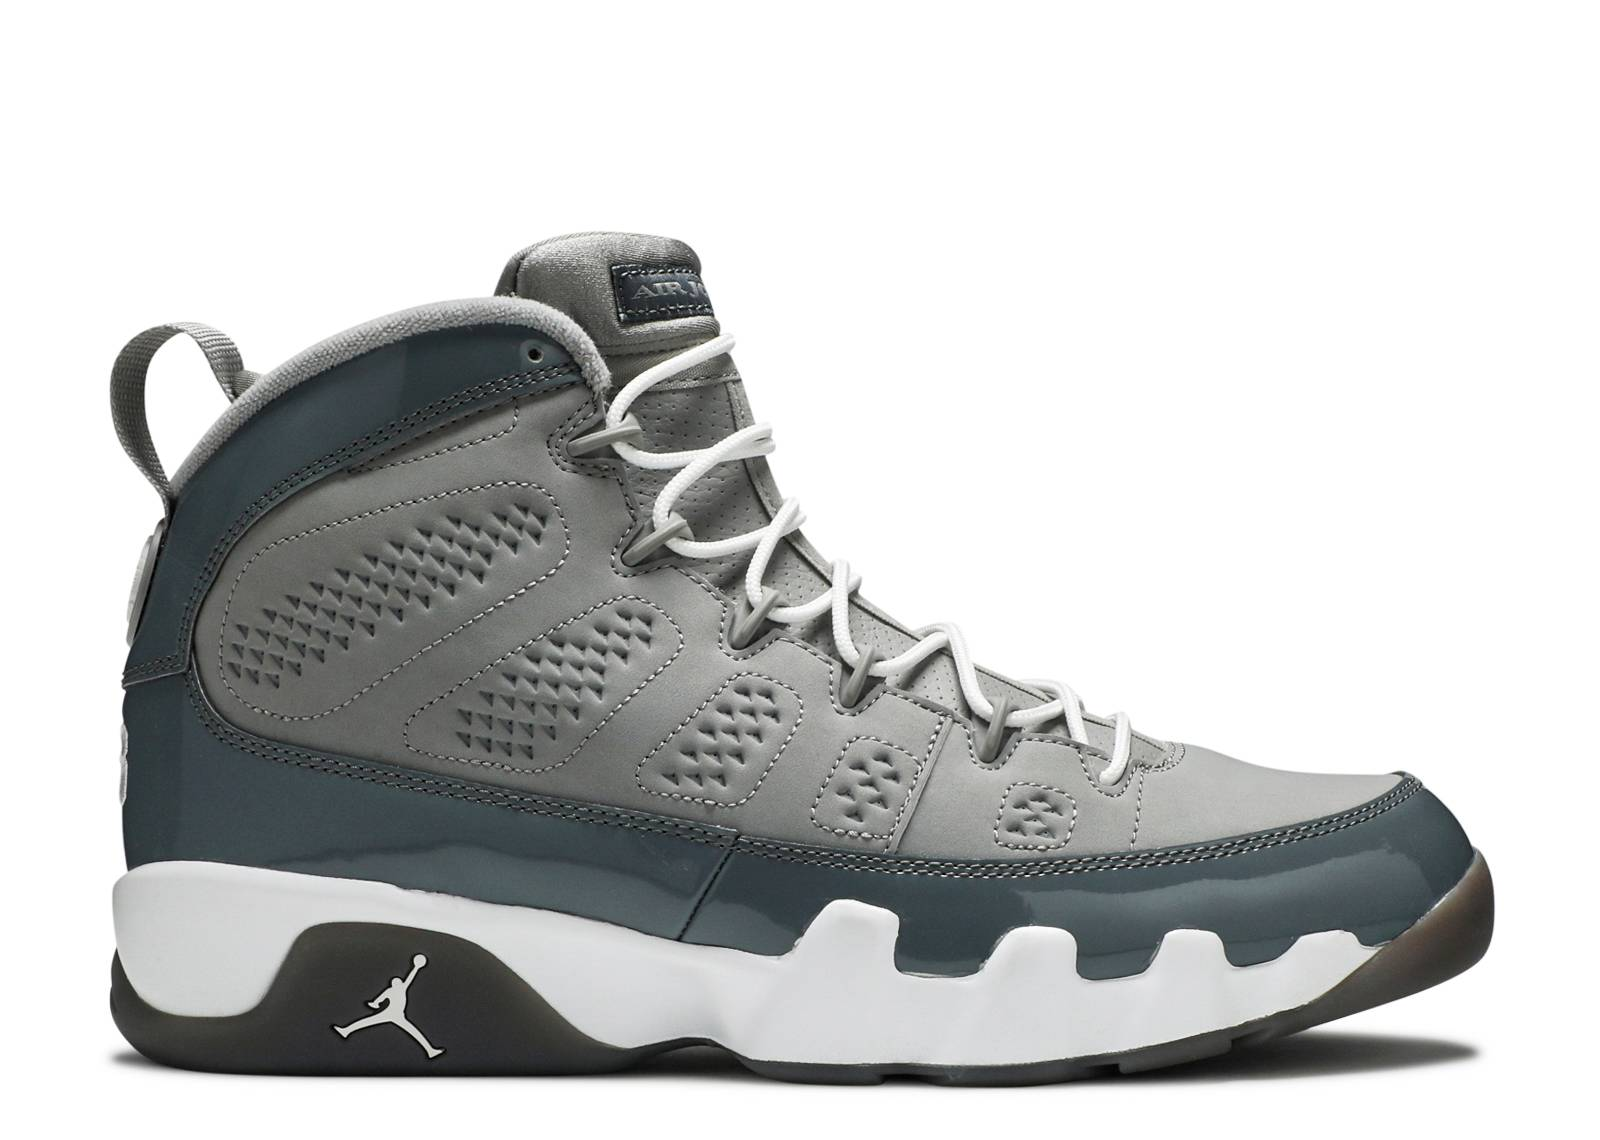 Air Jordan Gris Froid 9s